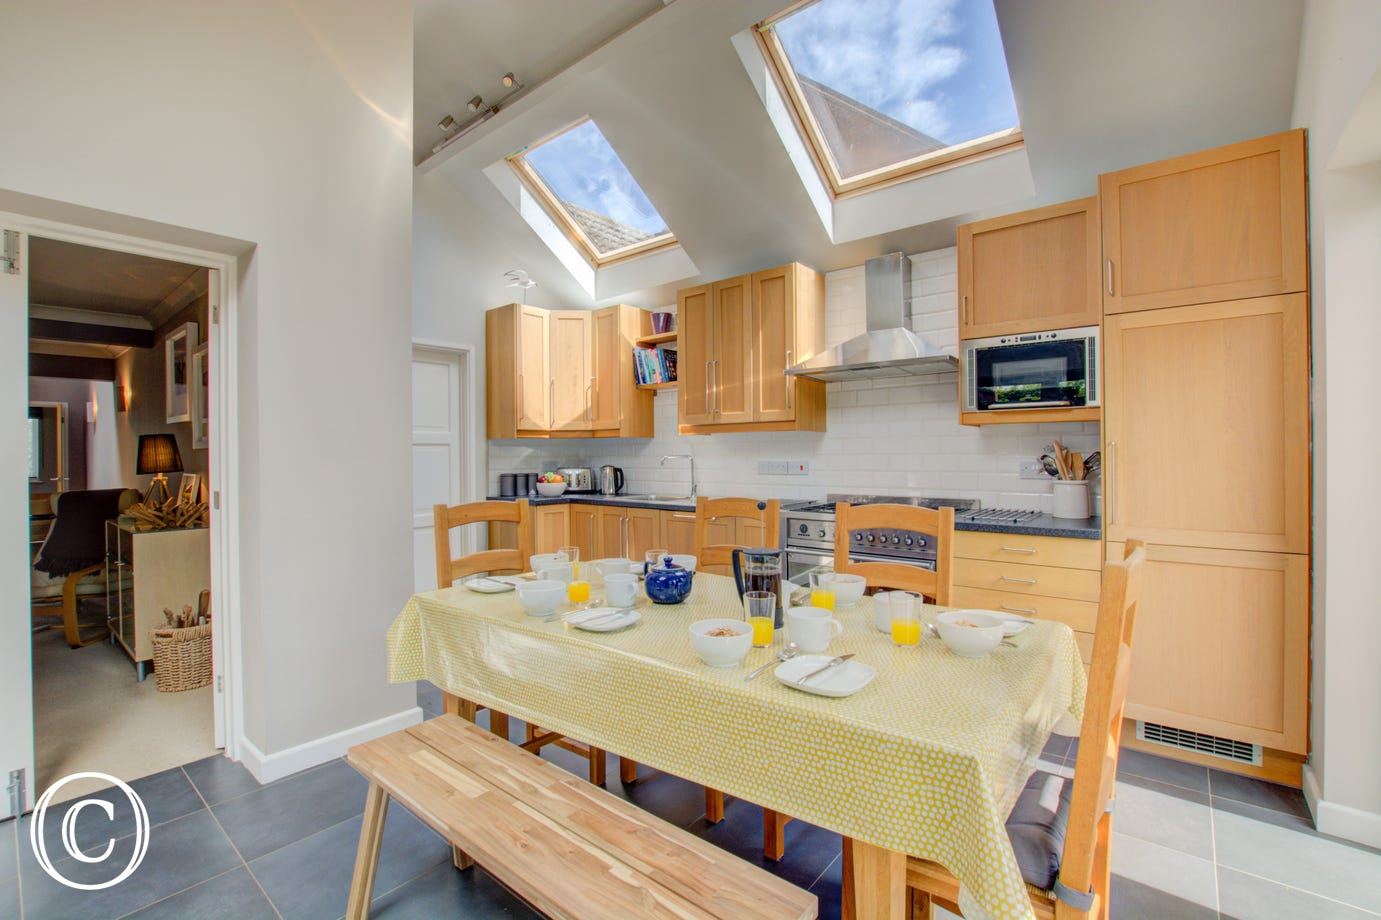 Kitchen with fitted units & dining table & chairs